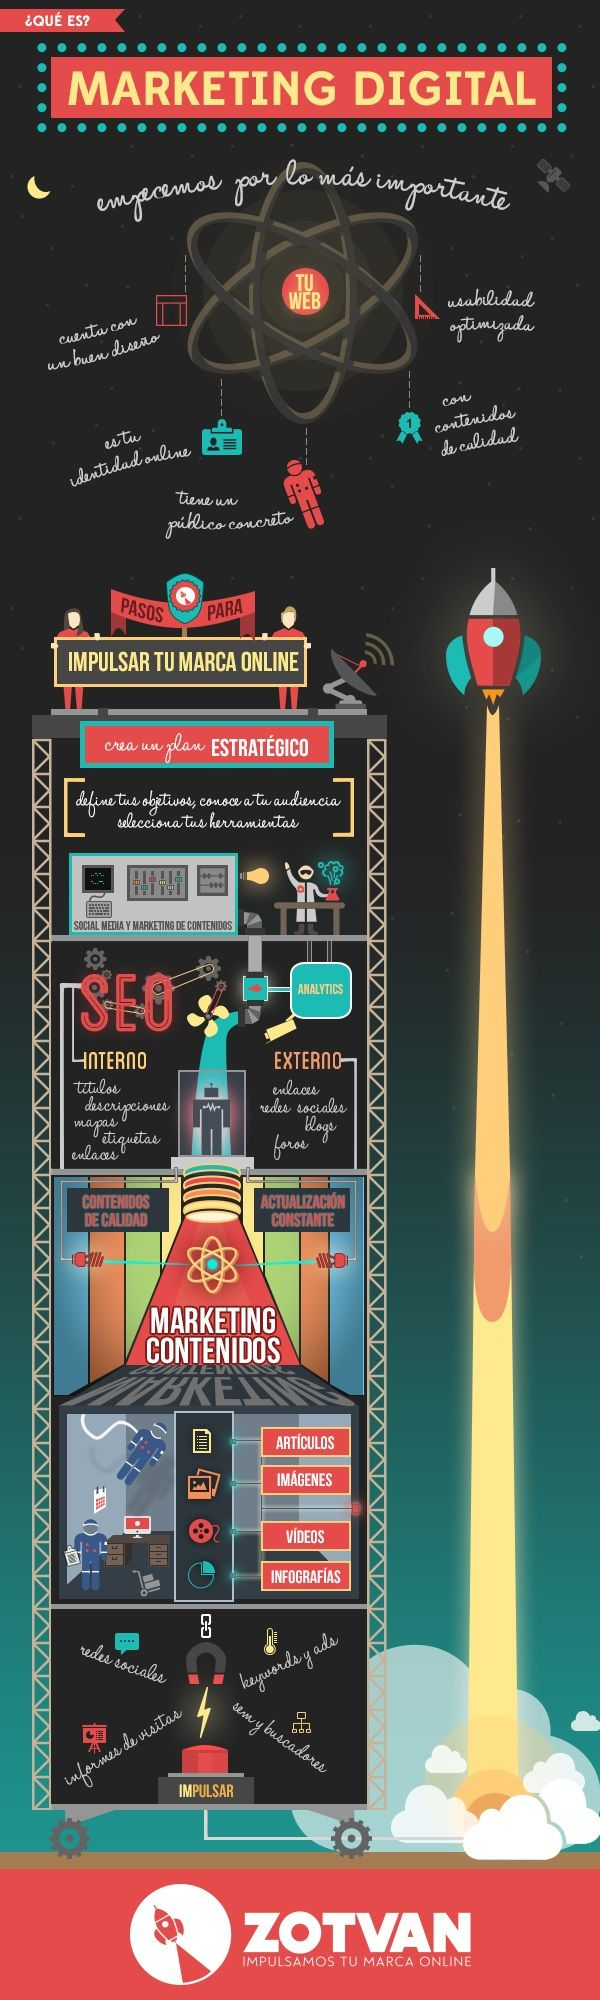 Qué es el Marketing Digital #infografia #infographic #marketing